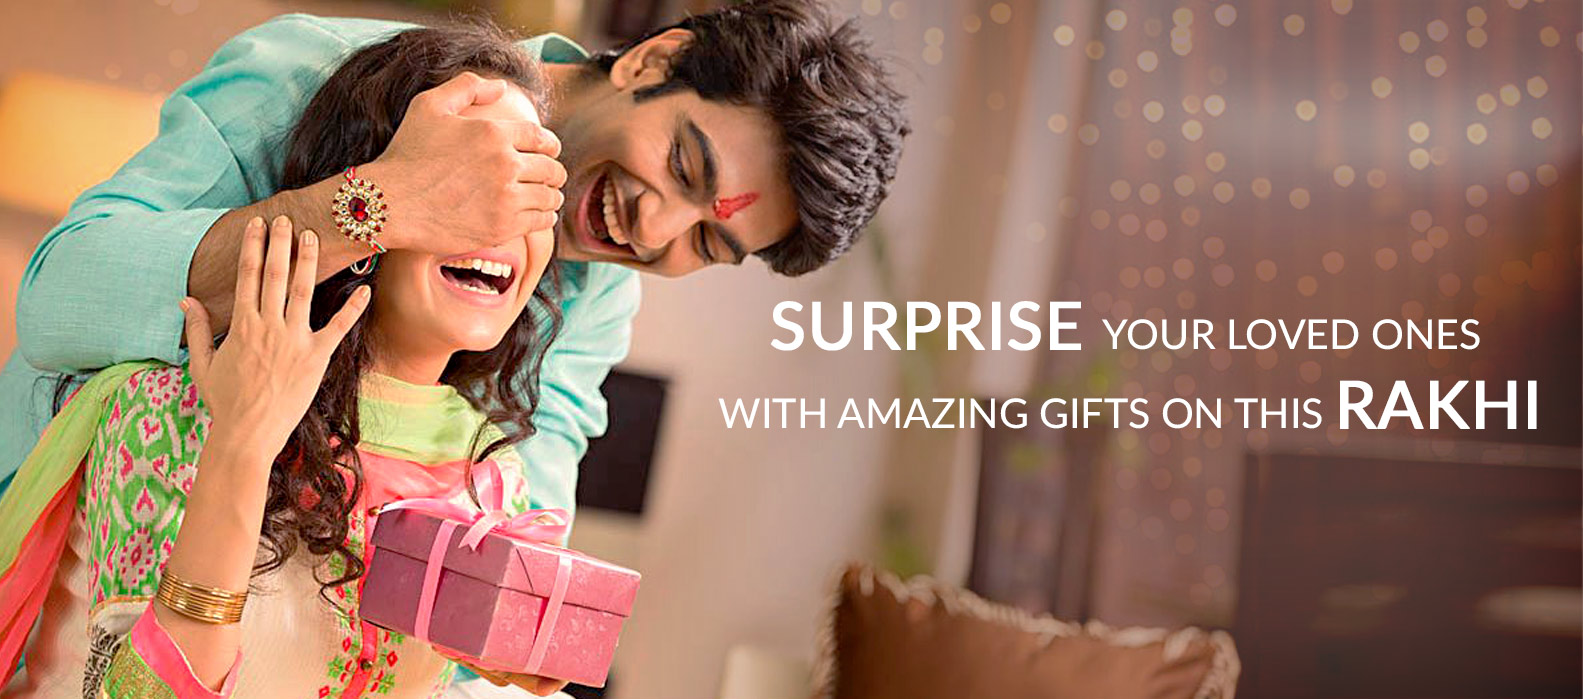 Surprise your Loved ones with Amazing Gifts on this Rakhi